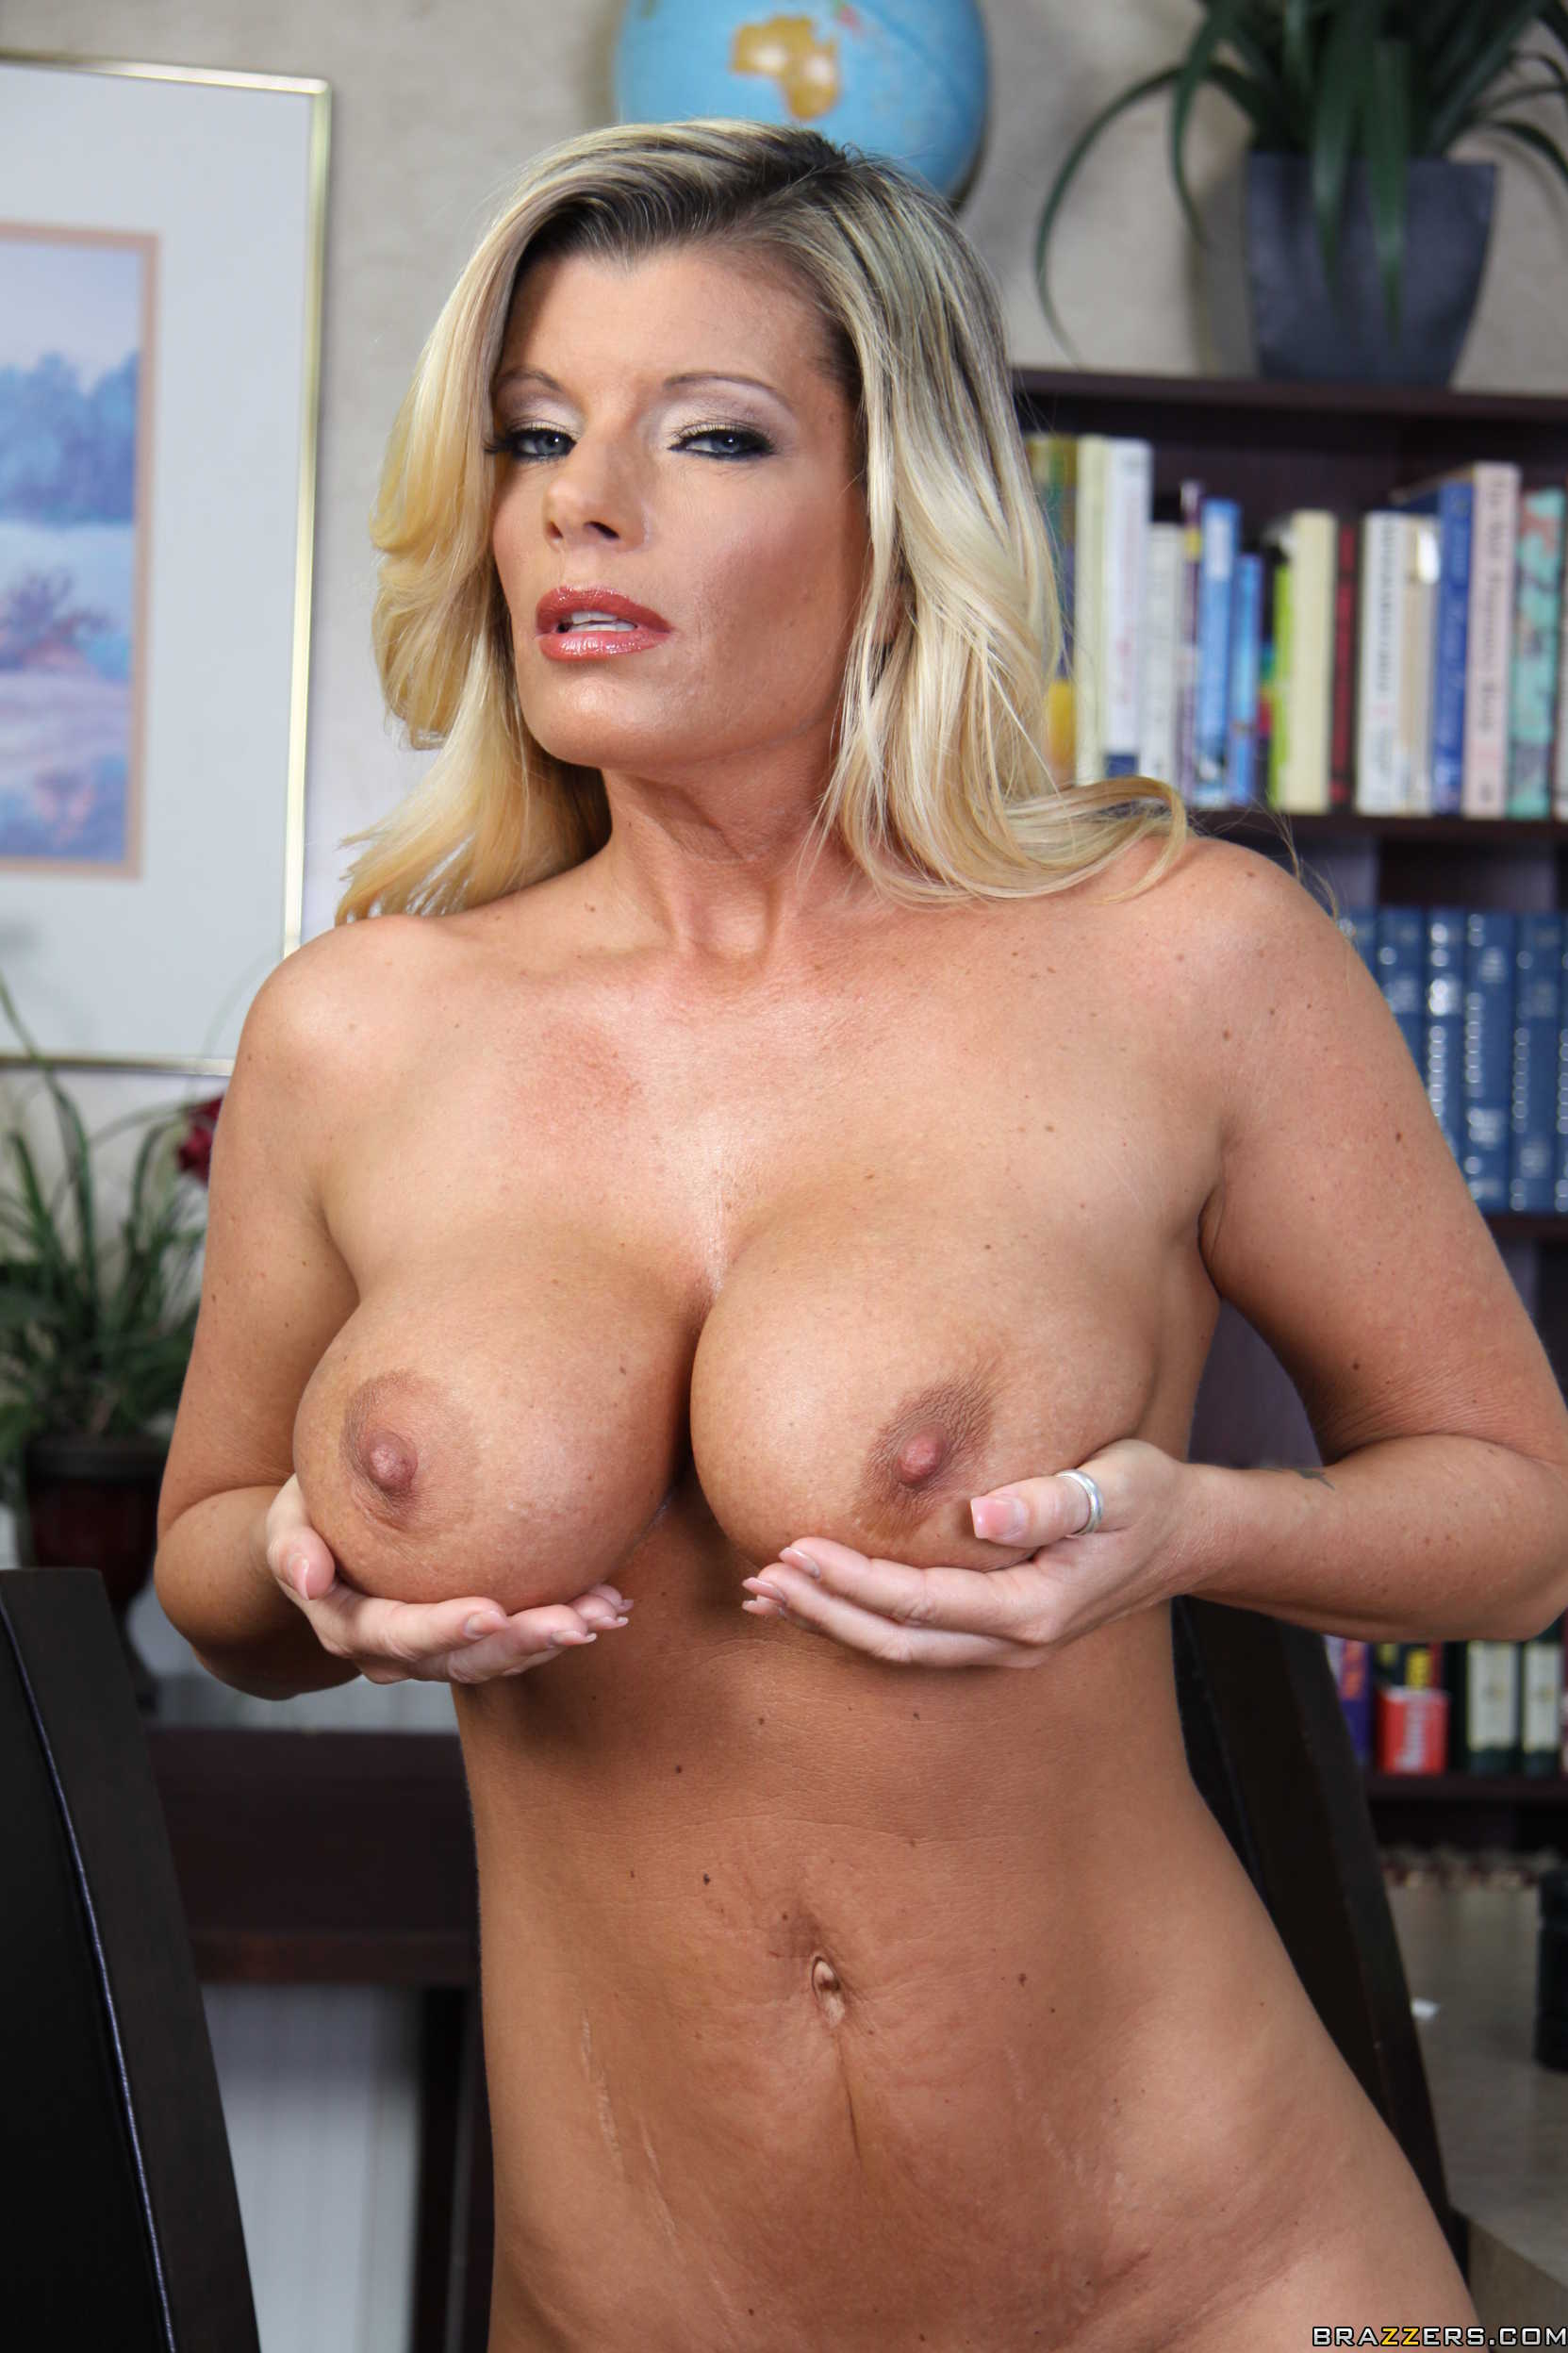 kristal summers mommy